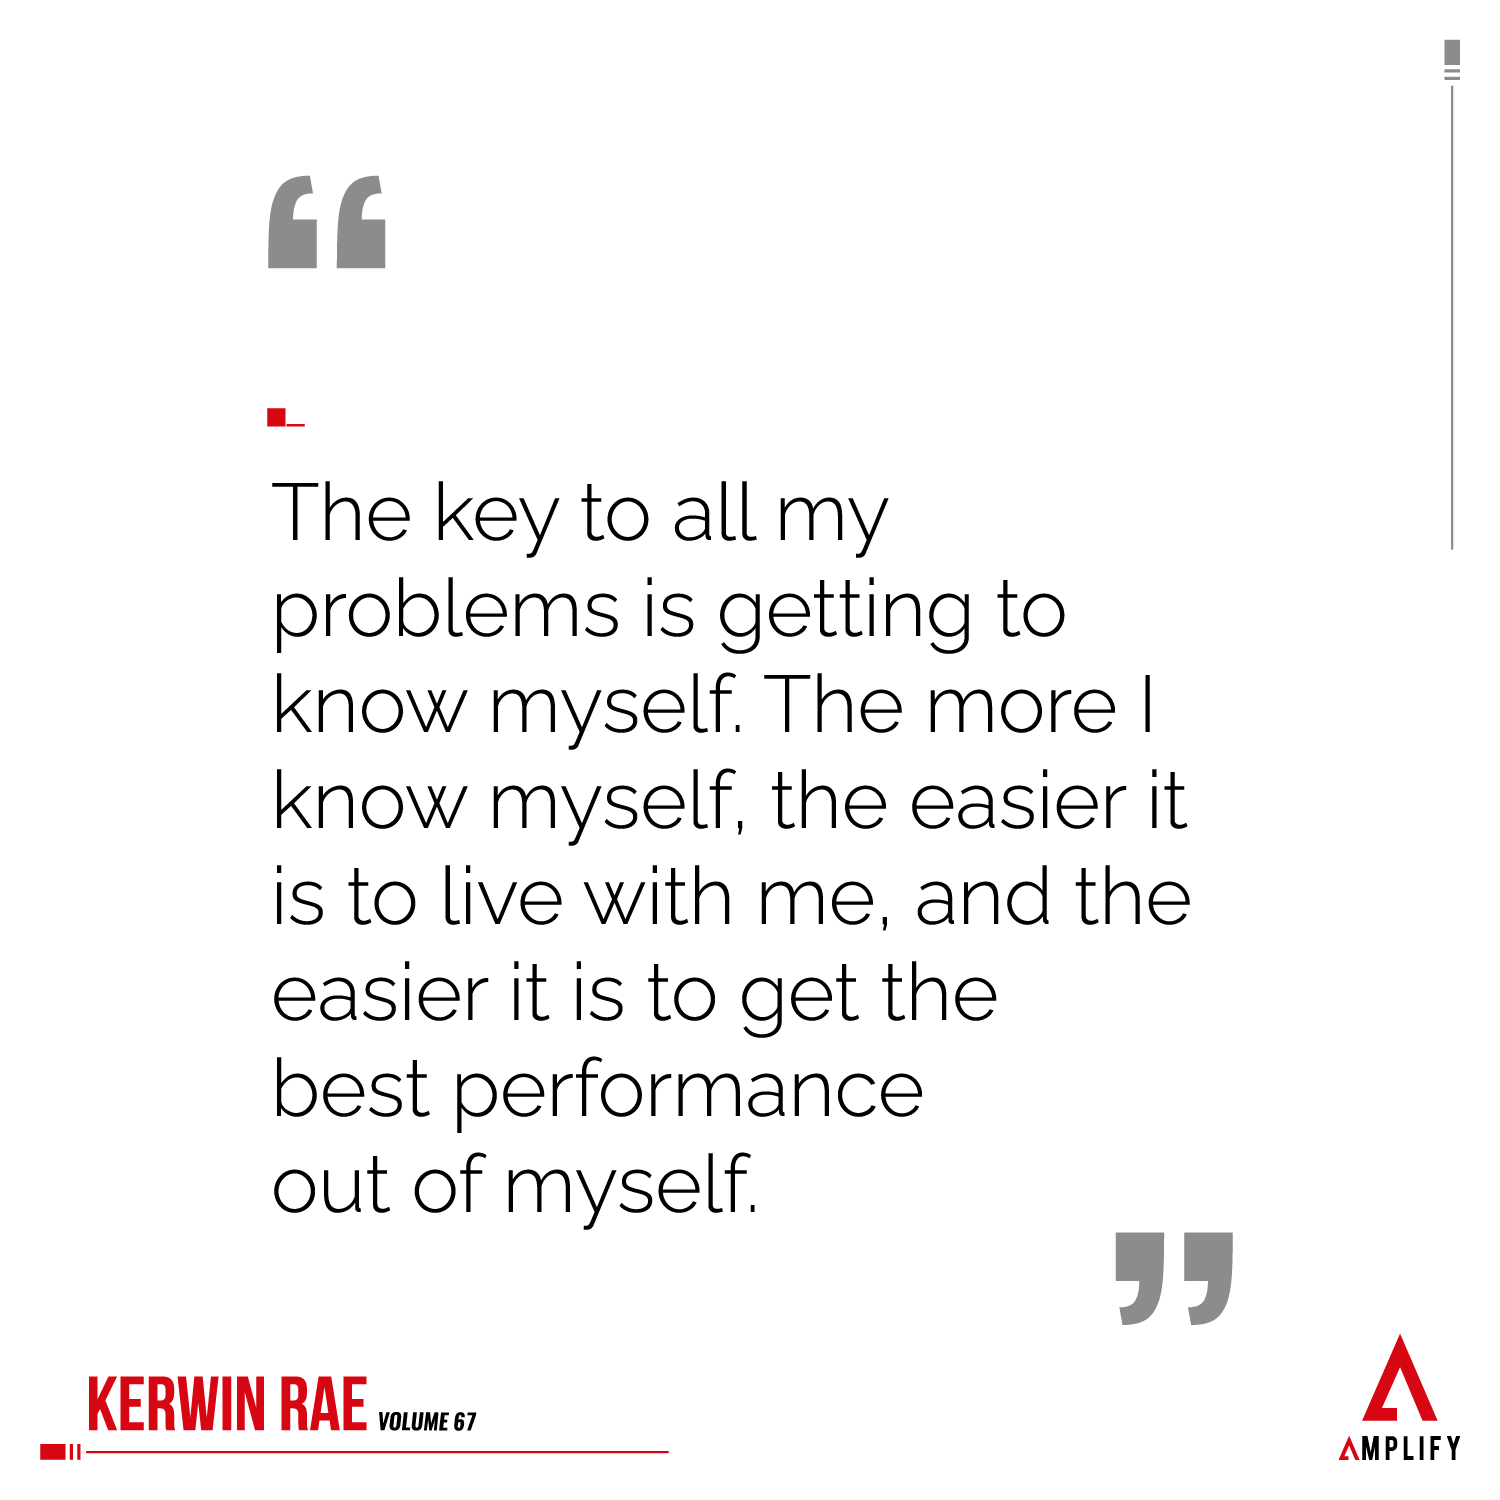 Quote: The key to all my problems is getting to know myself. The more I know myself, the easier it is to live with me, and the easier it is to get the best performance out of myself.